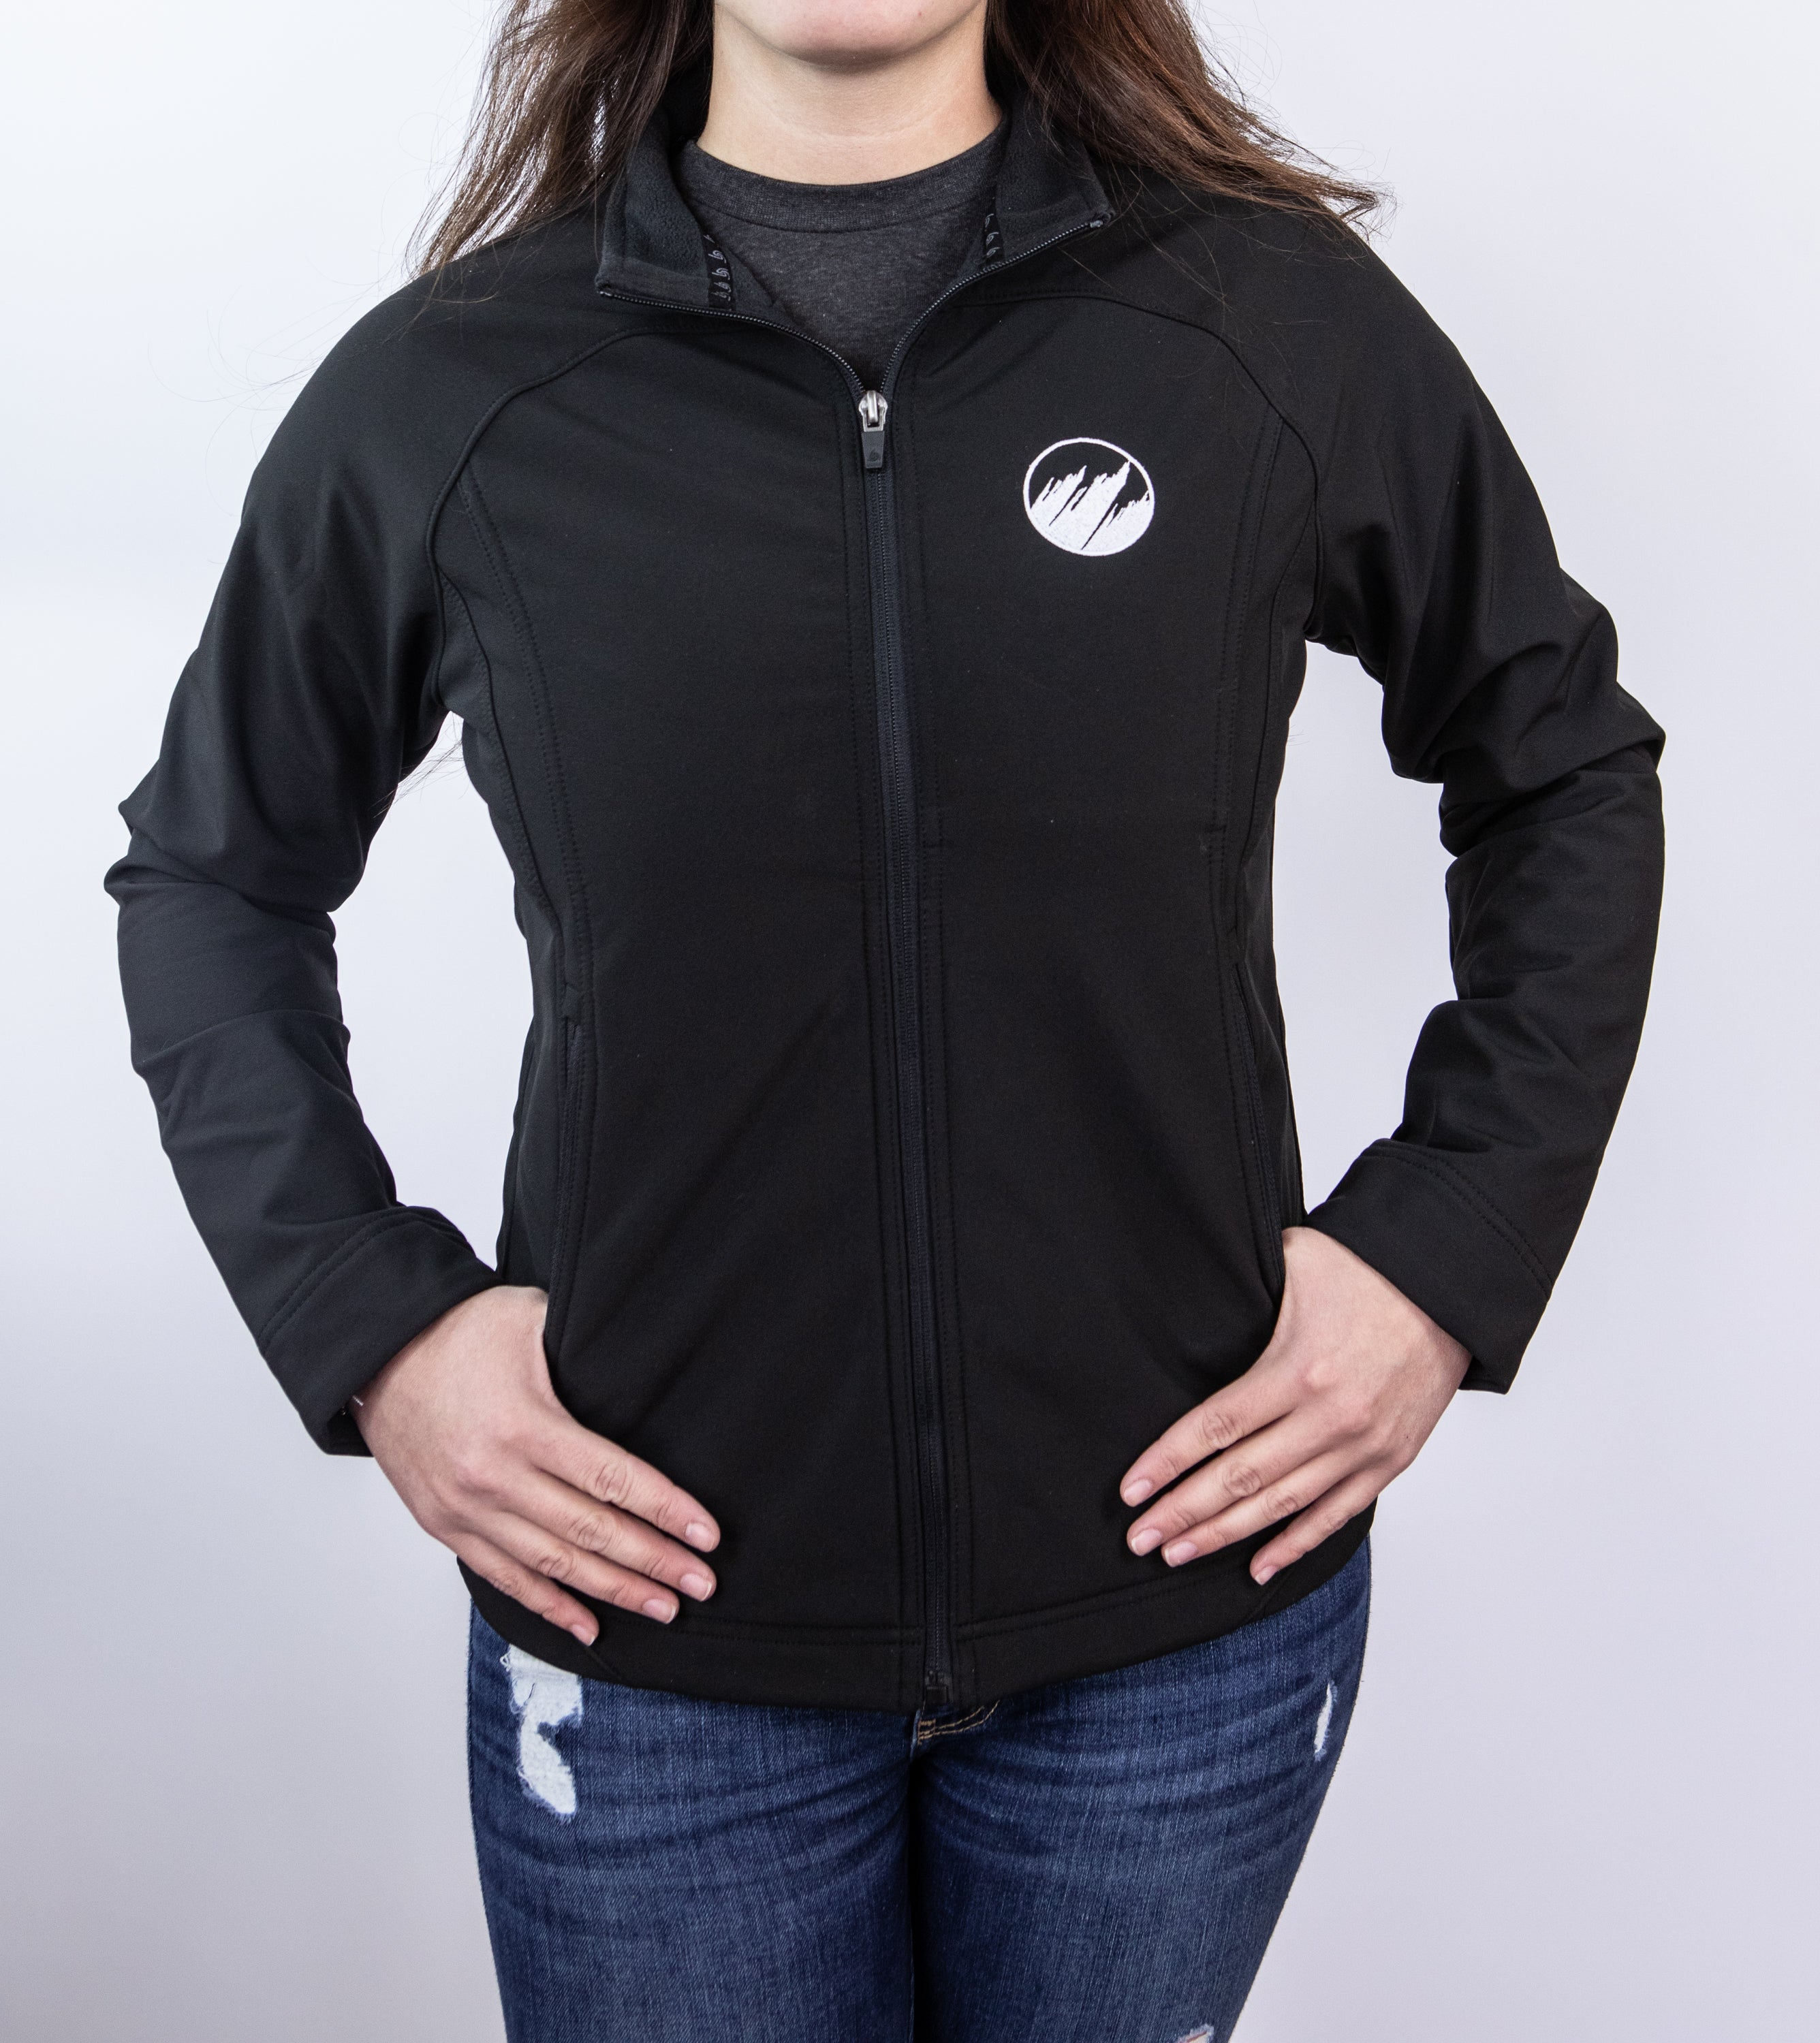 Women's Black Soft Shell Jacket